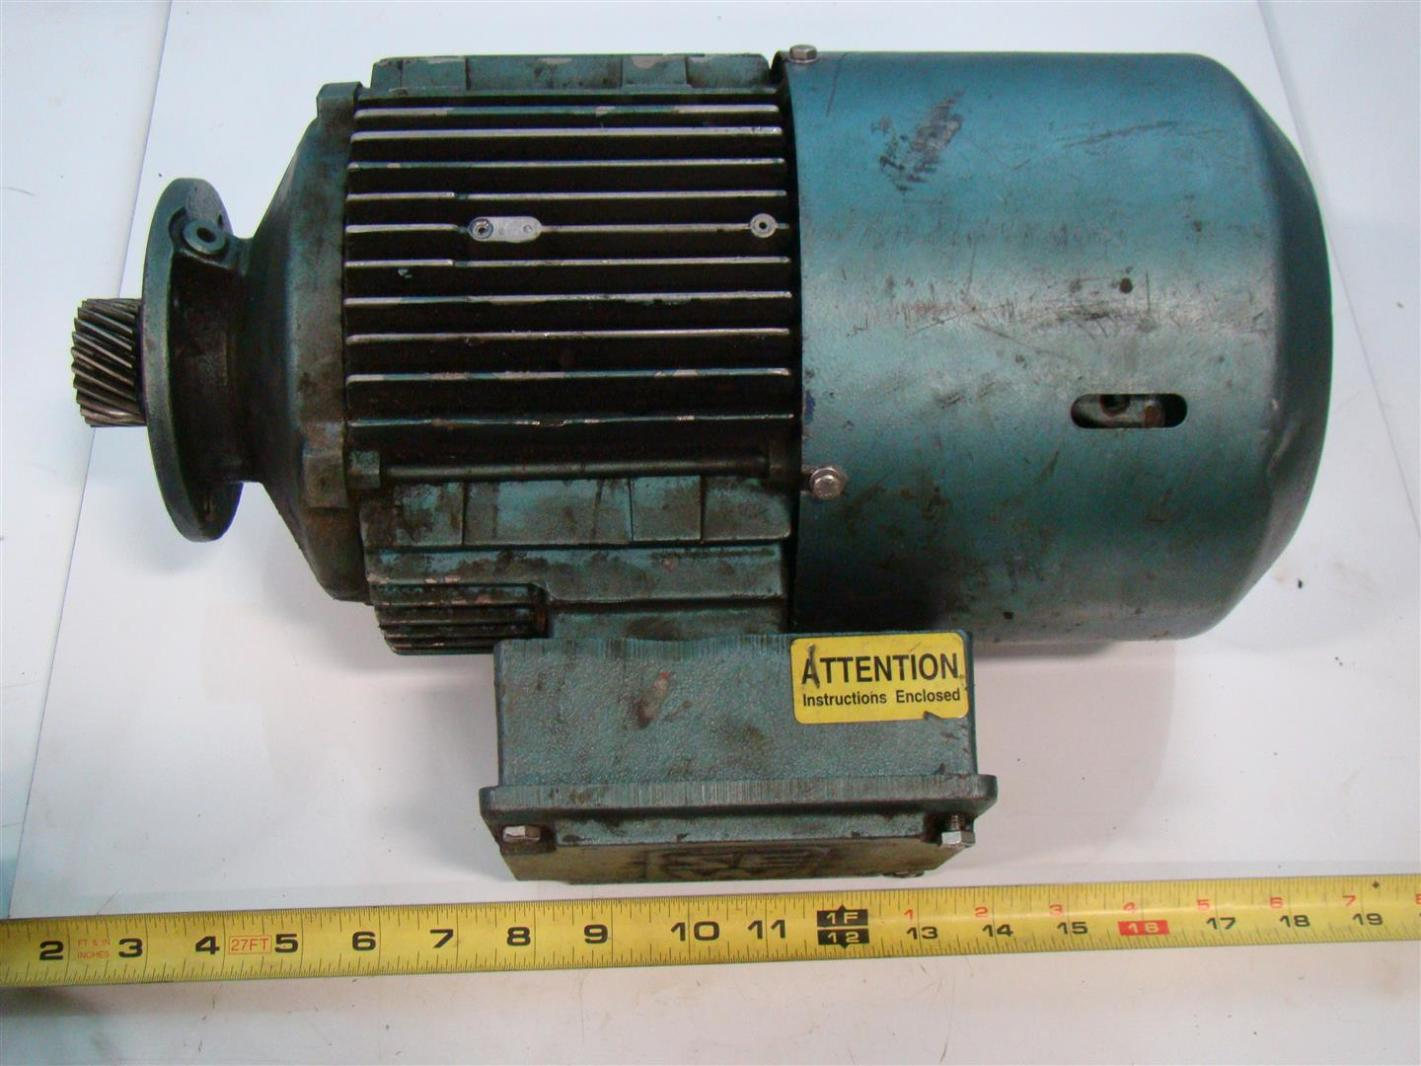 Sew Eurodrive Electrical Motor Shaft Joseph Fazzio